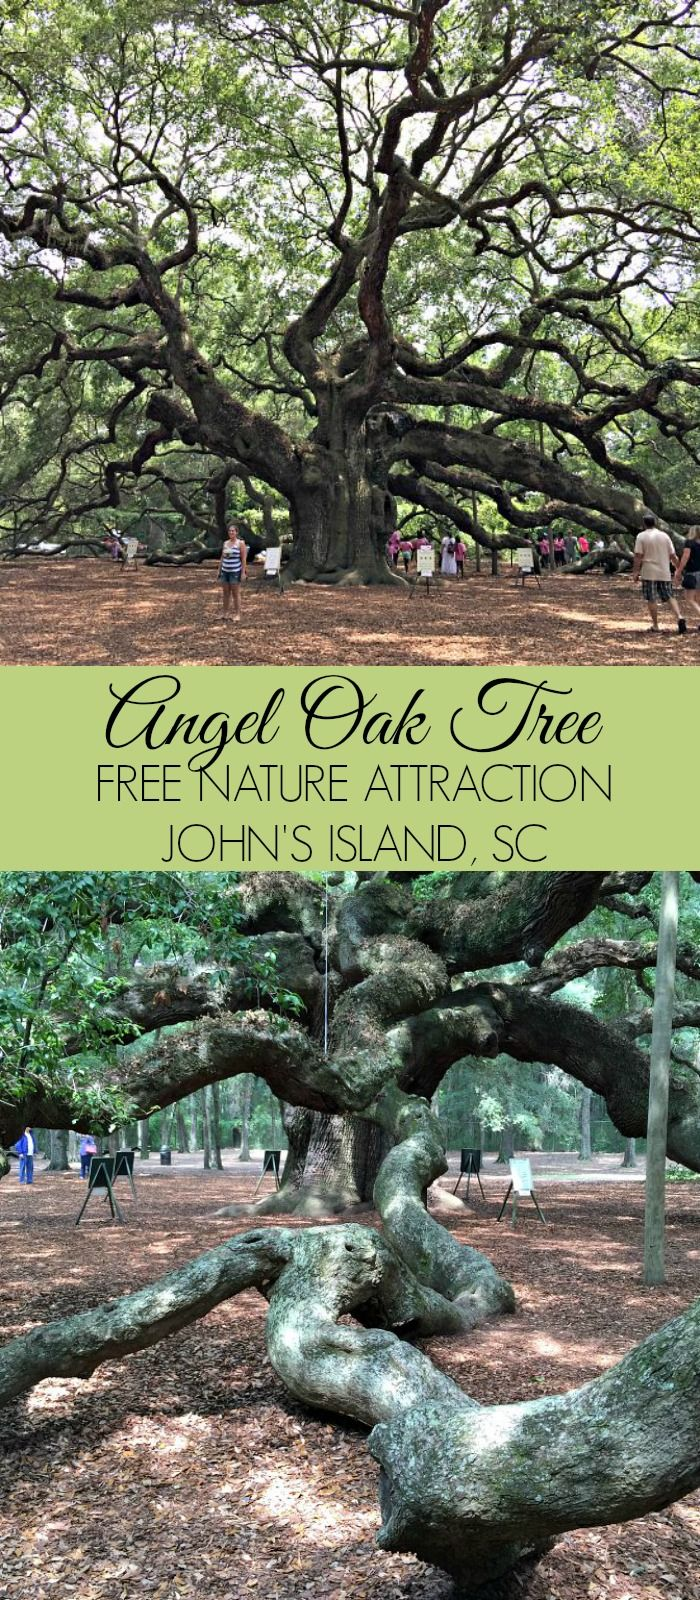 Travel to South Carolina and visit the  free nature attraction on John's Island, SC - The Angel Oak Tree